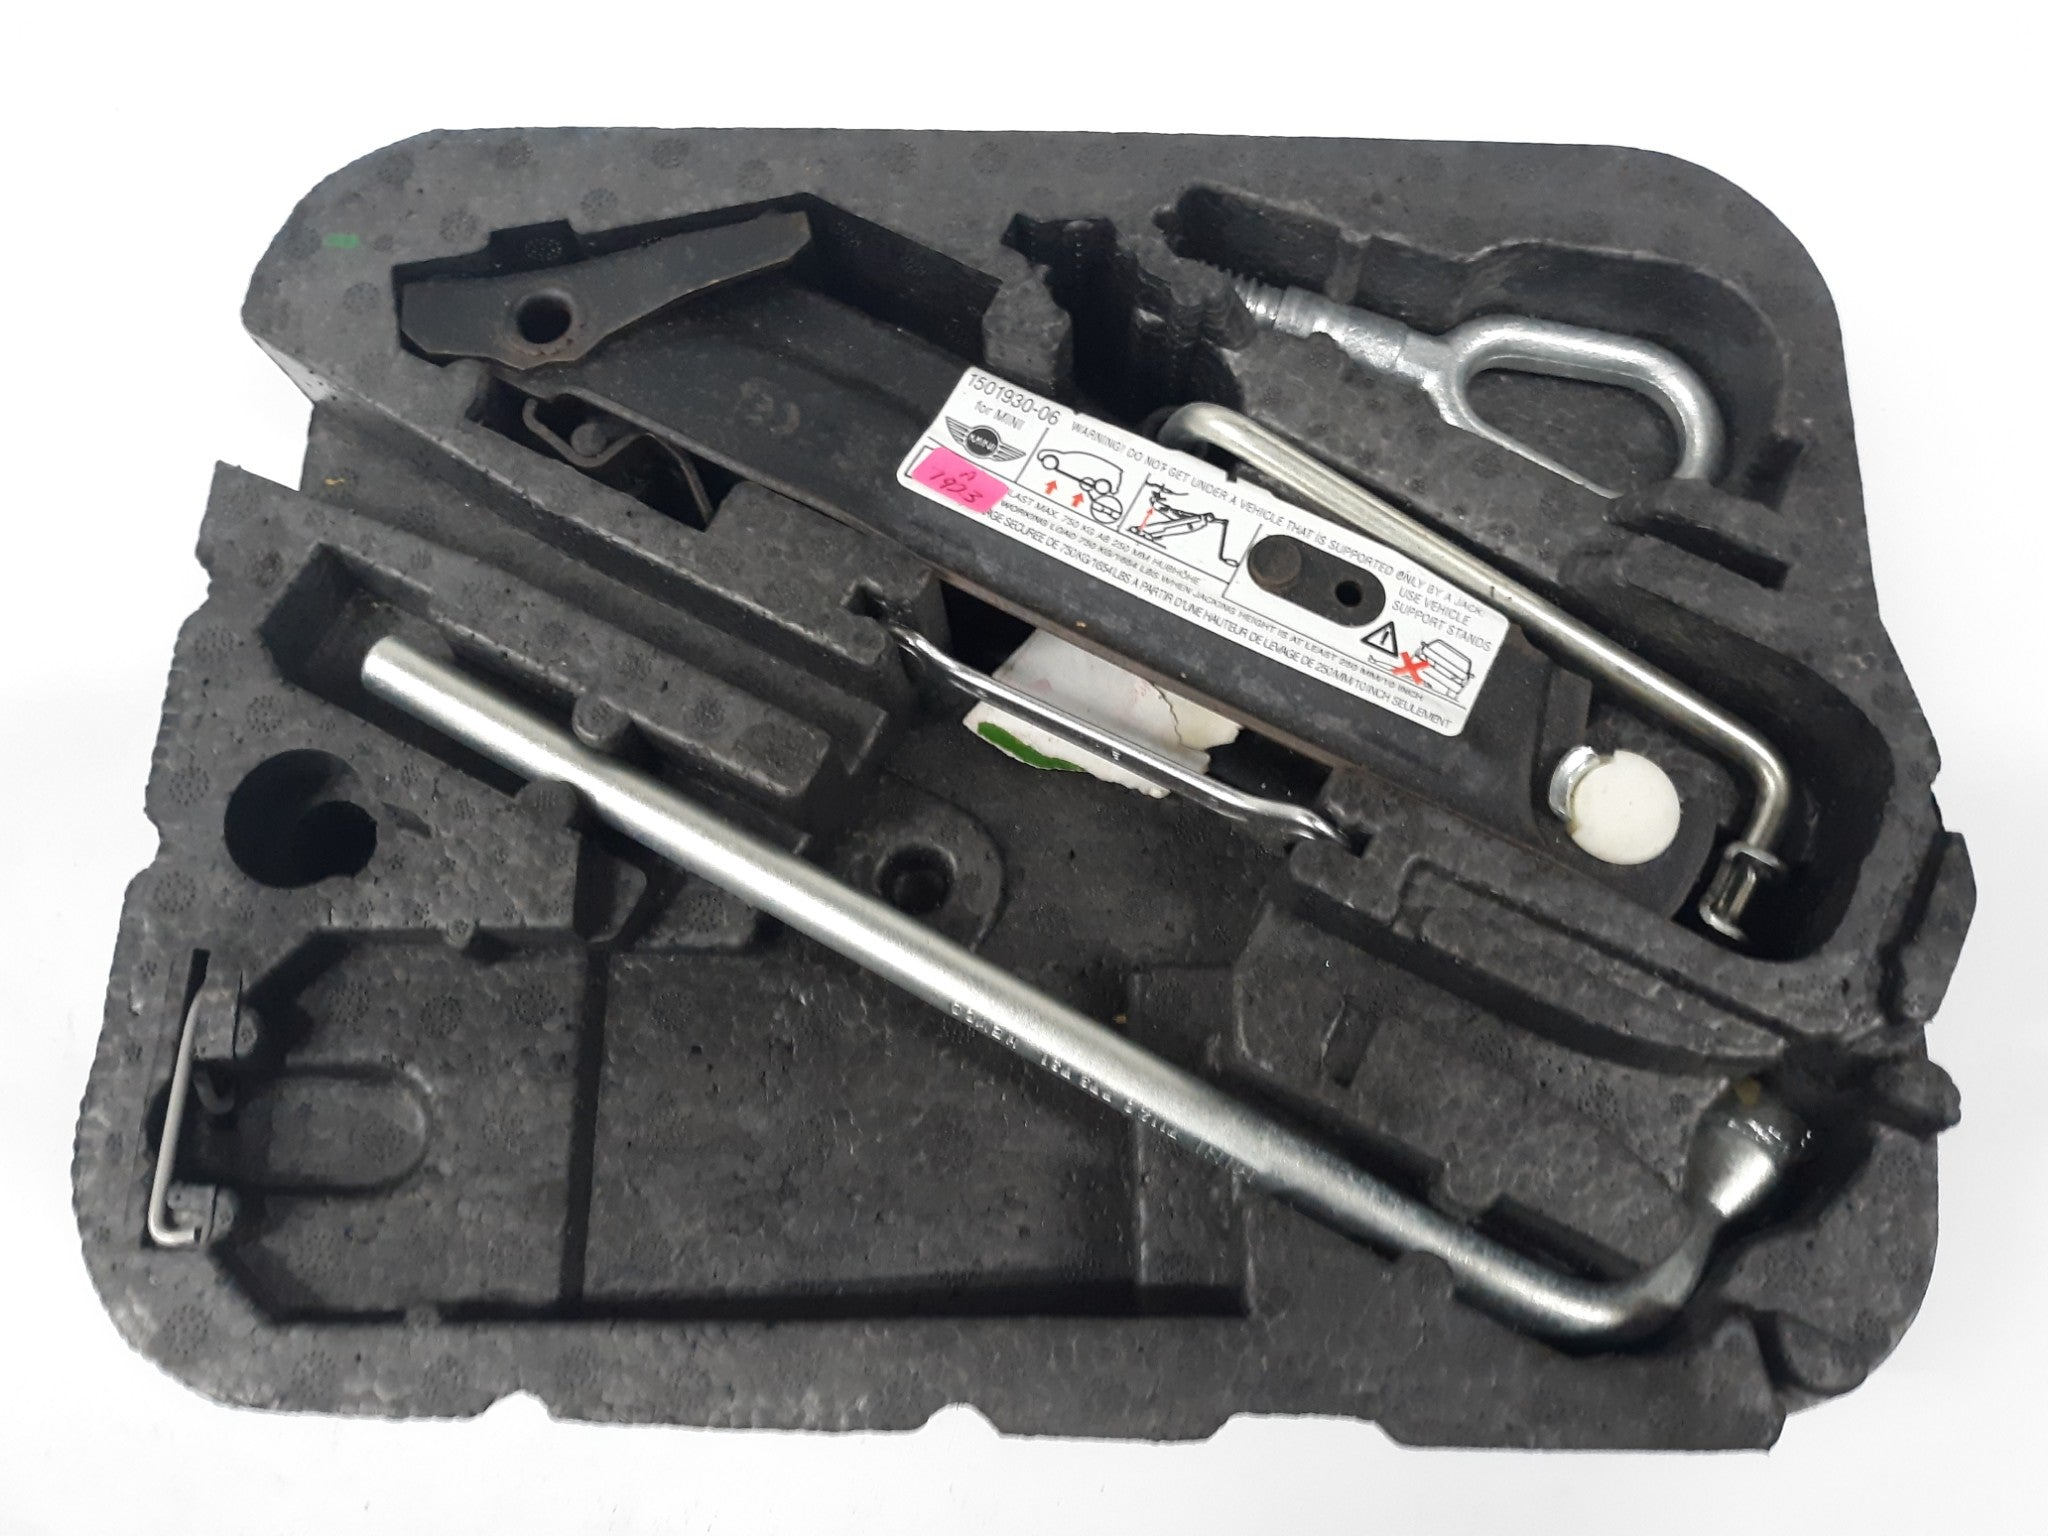 2002 -2015 Mini Cooper R50 R59 Toolkit Tool Set Lifting Jack Spanner 1501930